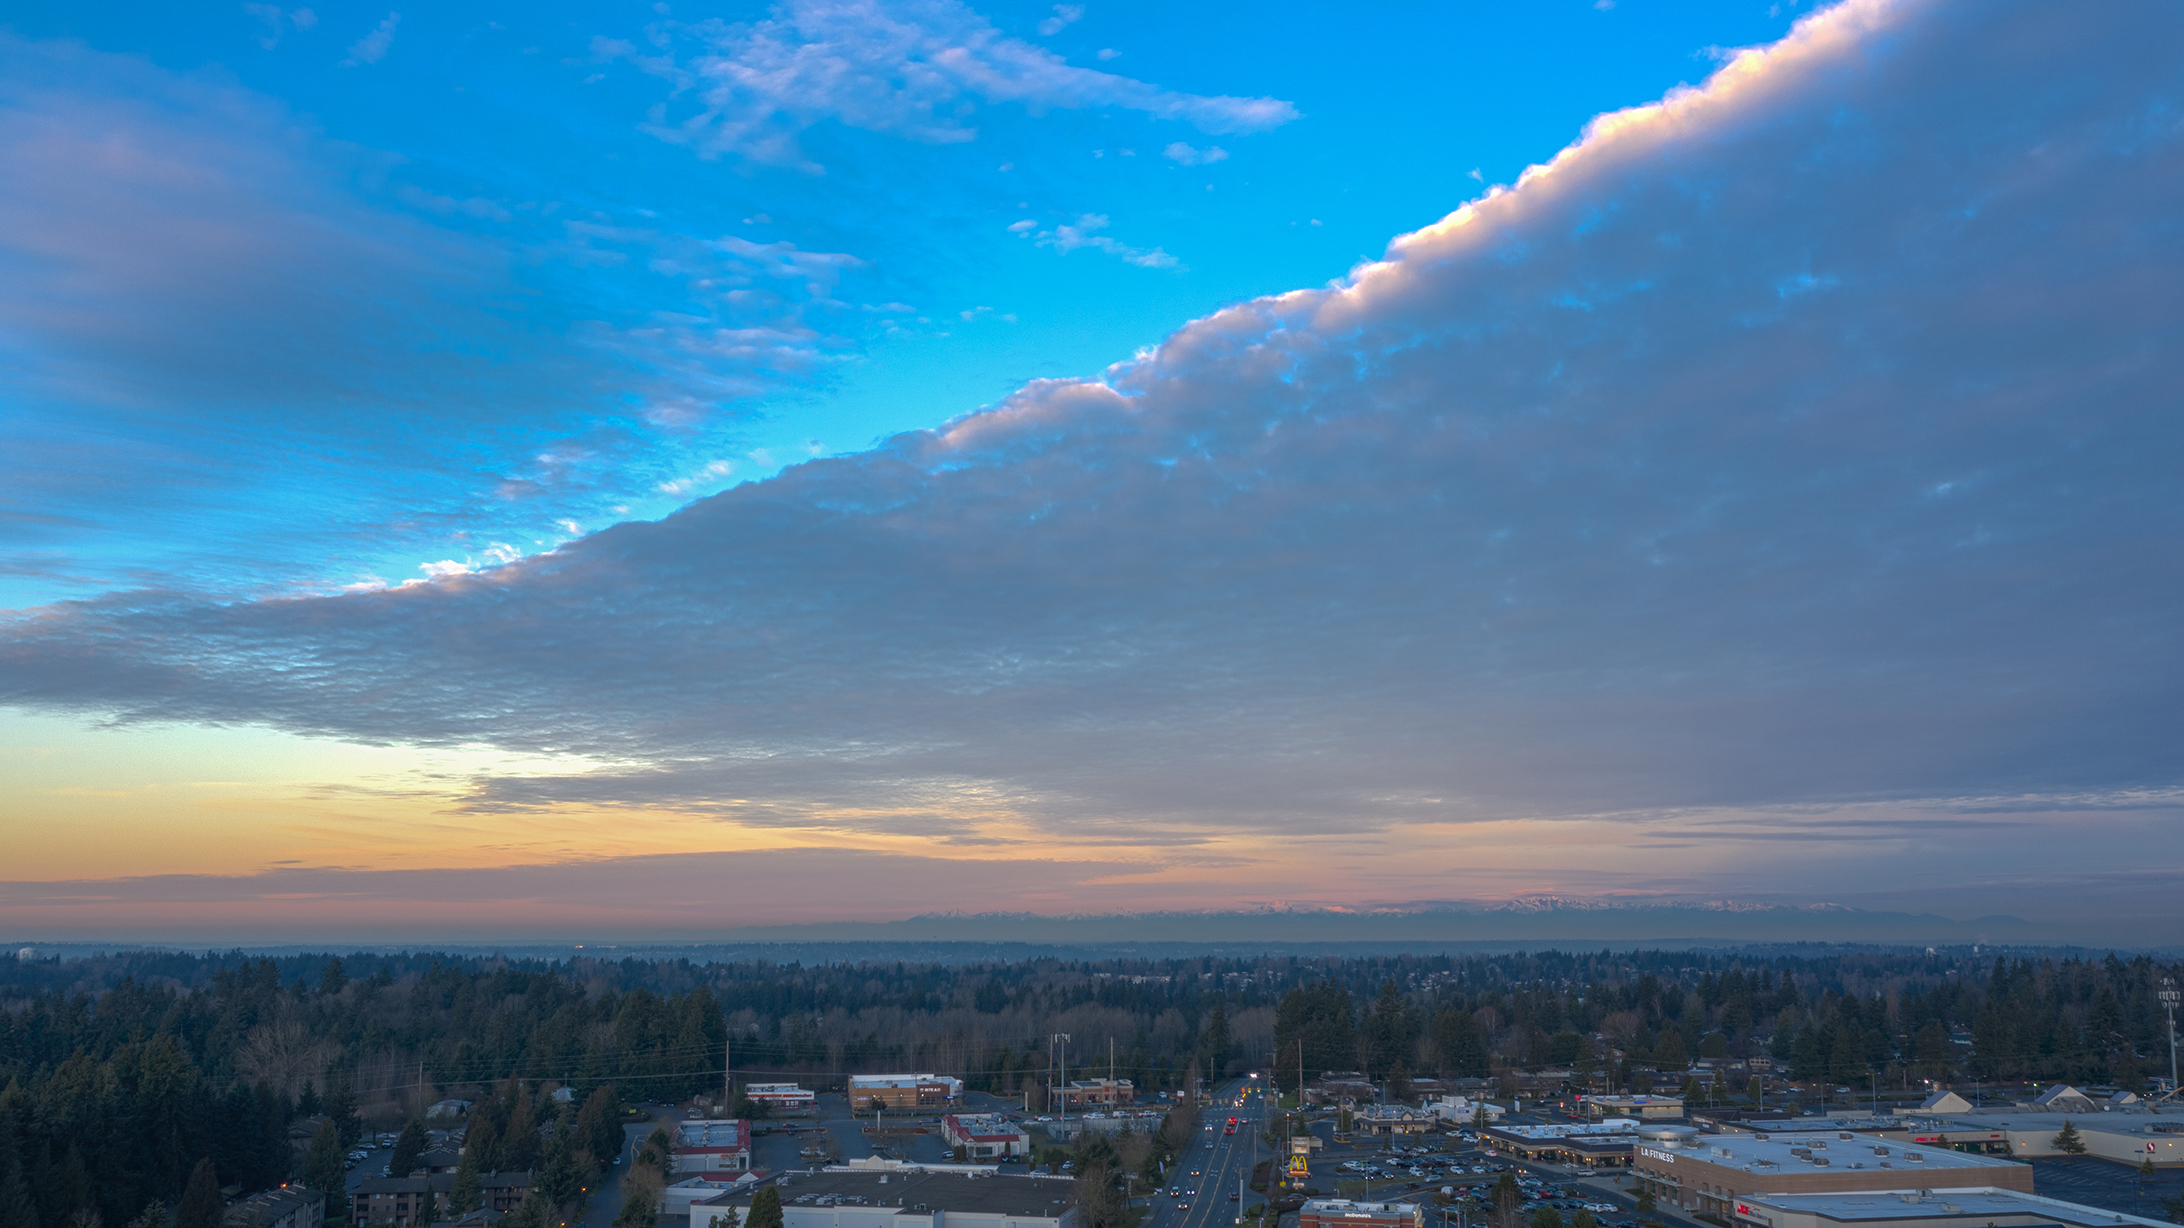 01_31_2019_Fairwood_Sunrise_HDR_3_SMALL.jpg